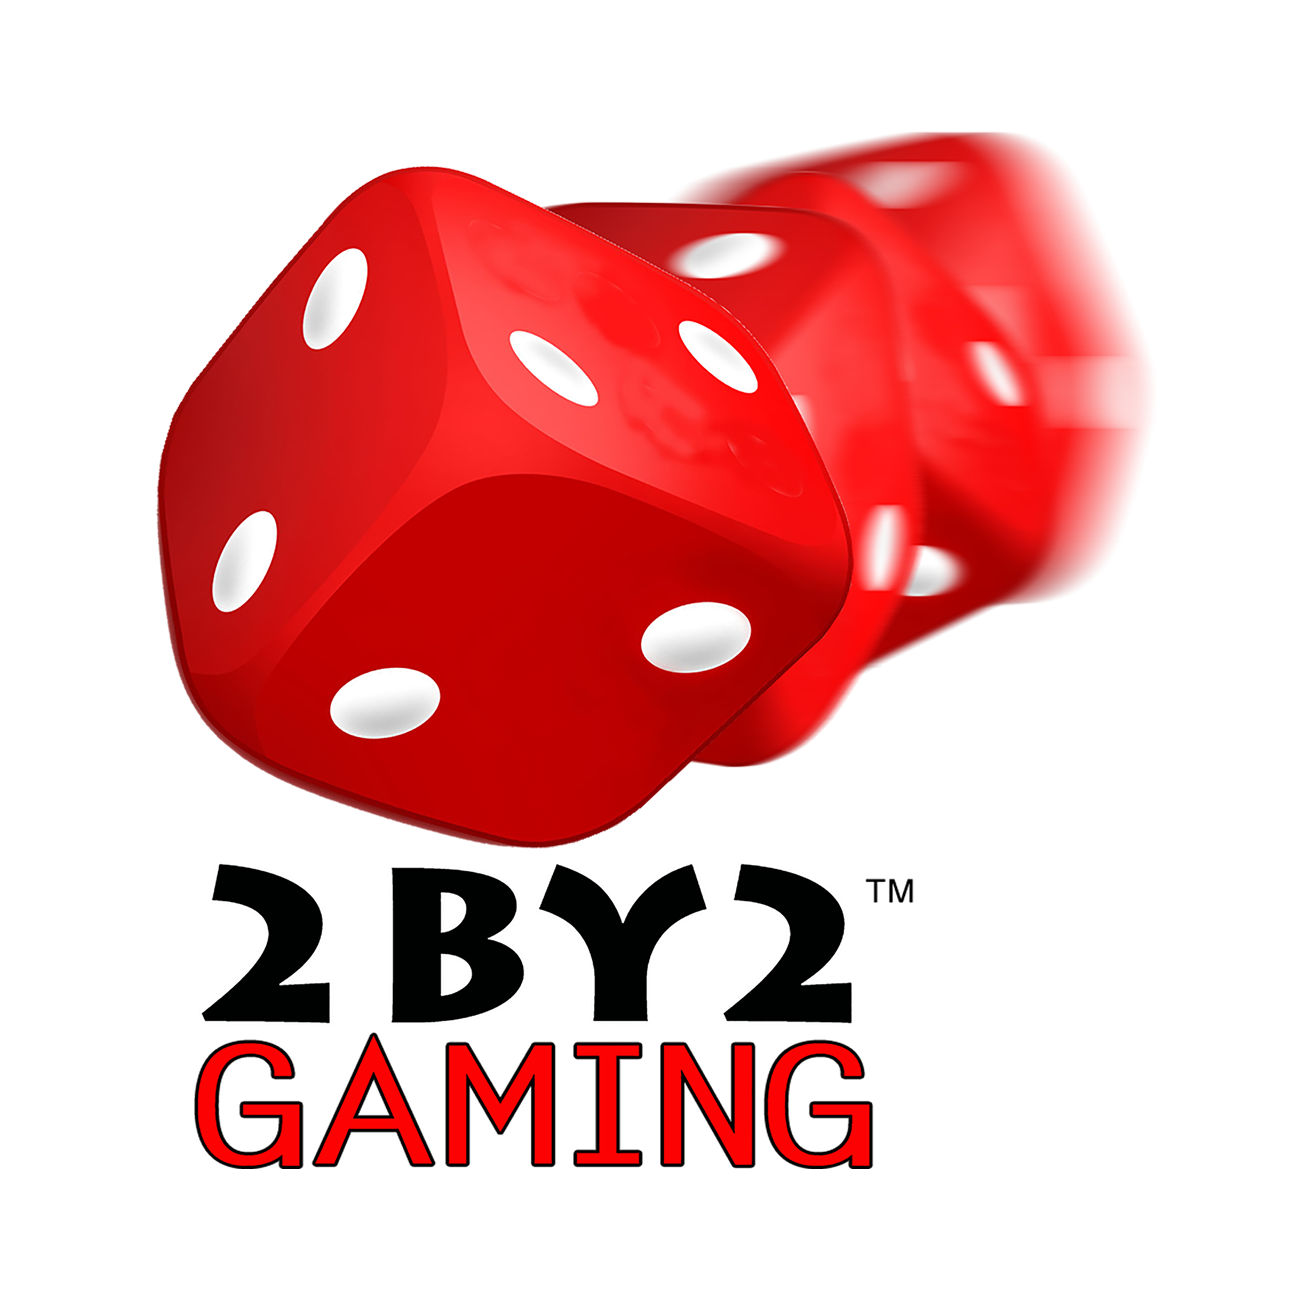 2 BY 2 Gaming games